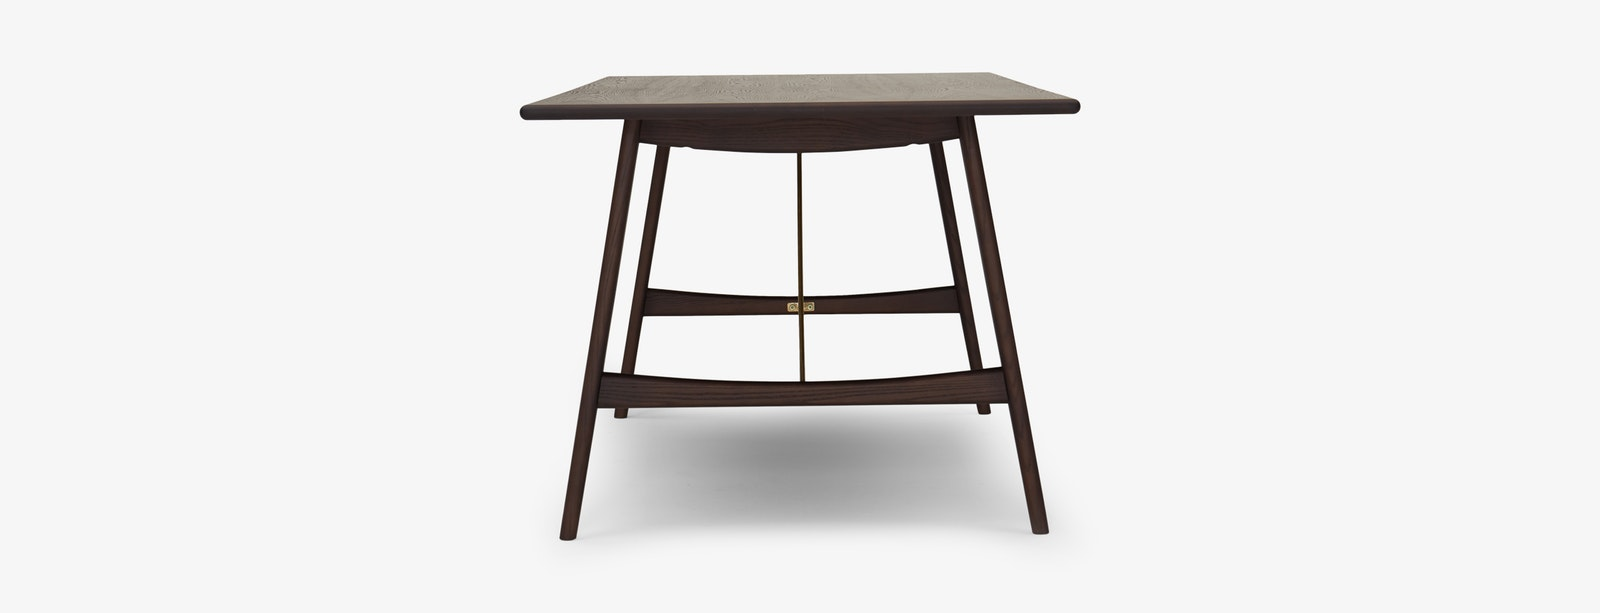 Emery-Dining-Table-T1-231